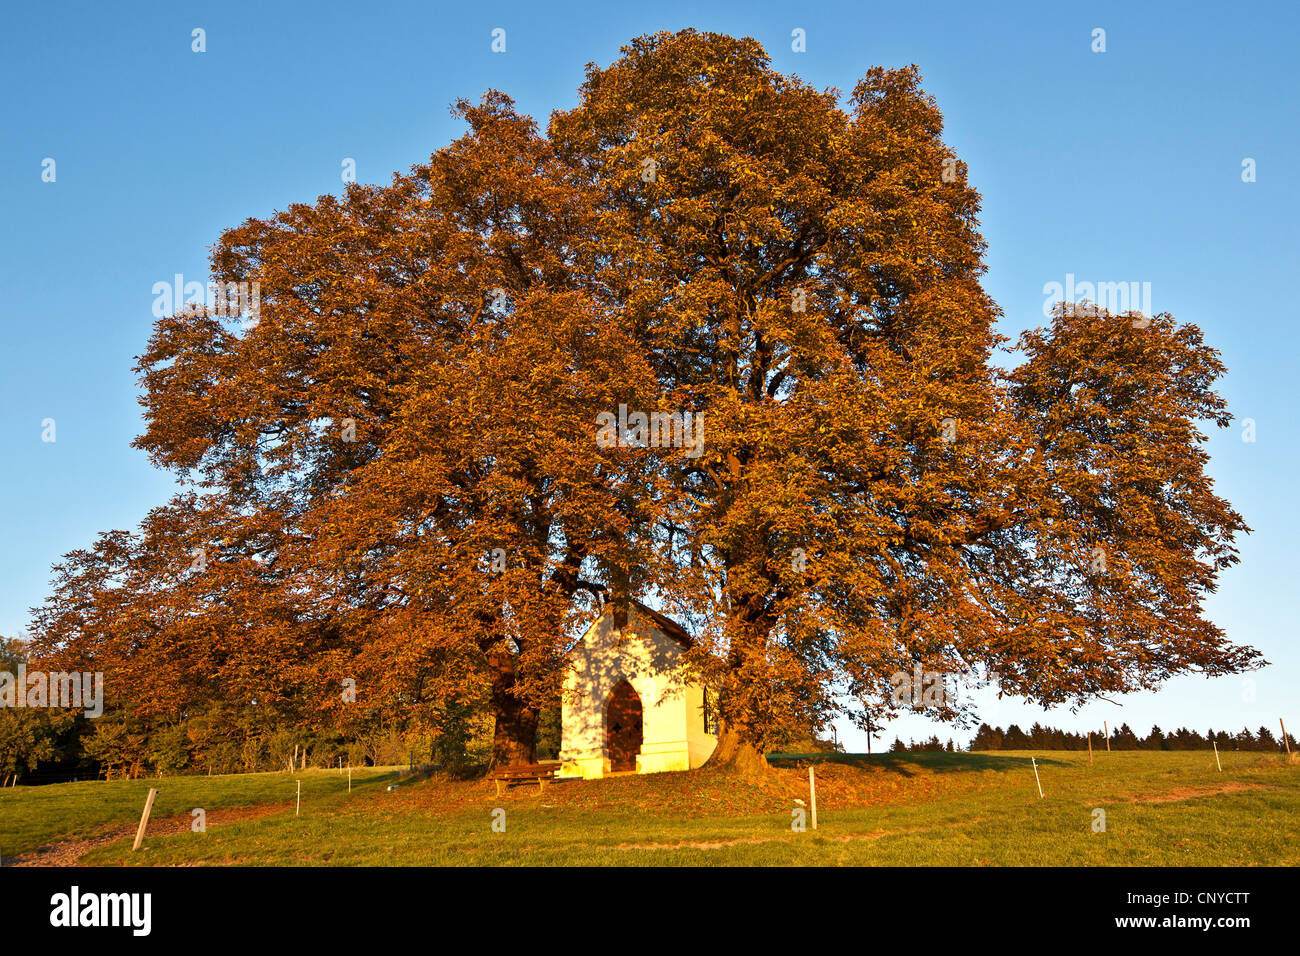 common horse chestnut (Aesculus hippocastanum), in autum with chapel, Germany, Bavaria - Stock Image